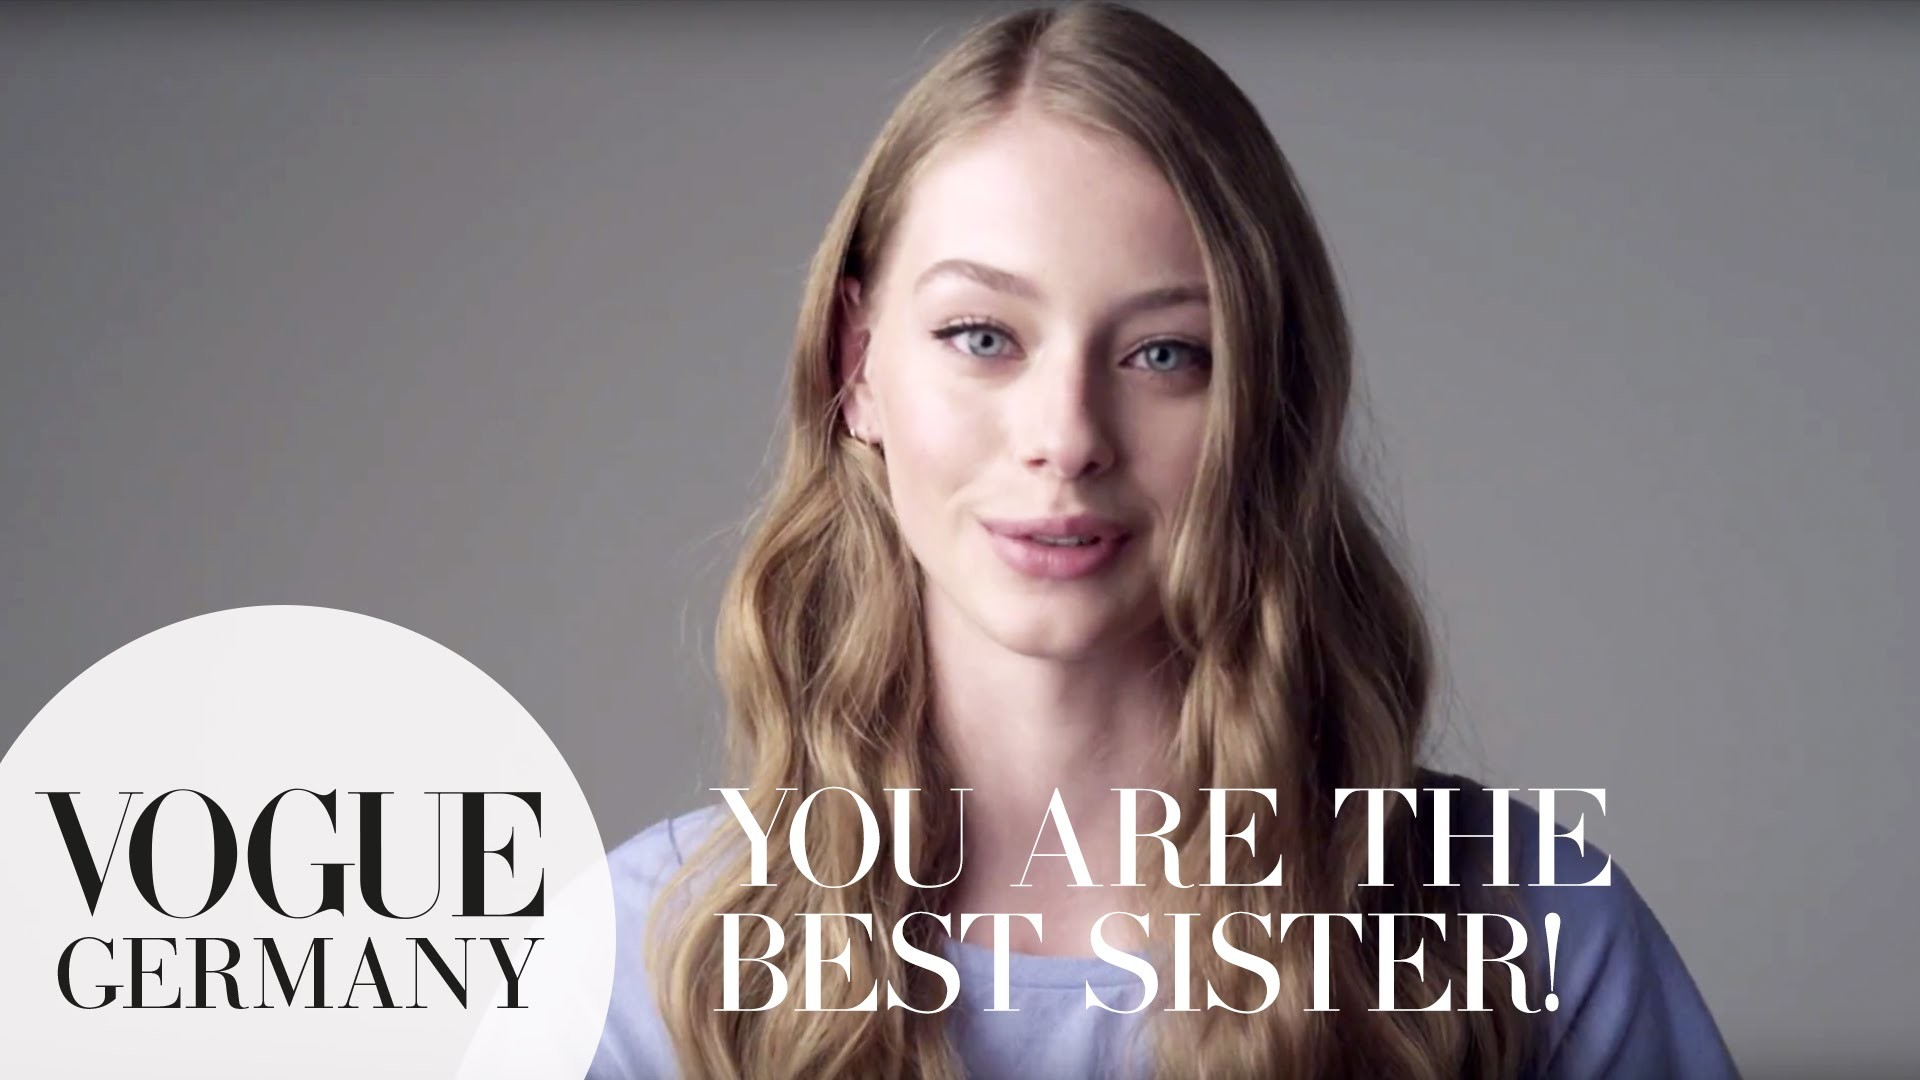 1920x1080 You're the best sister – A Message for you by Lauren de Graaf for VOGUE